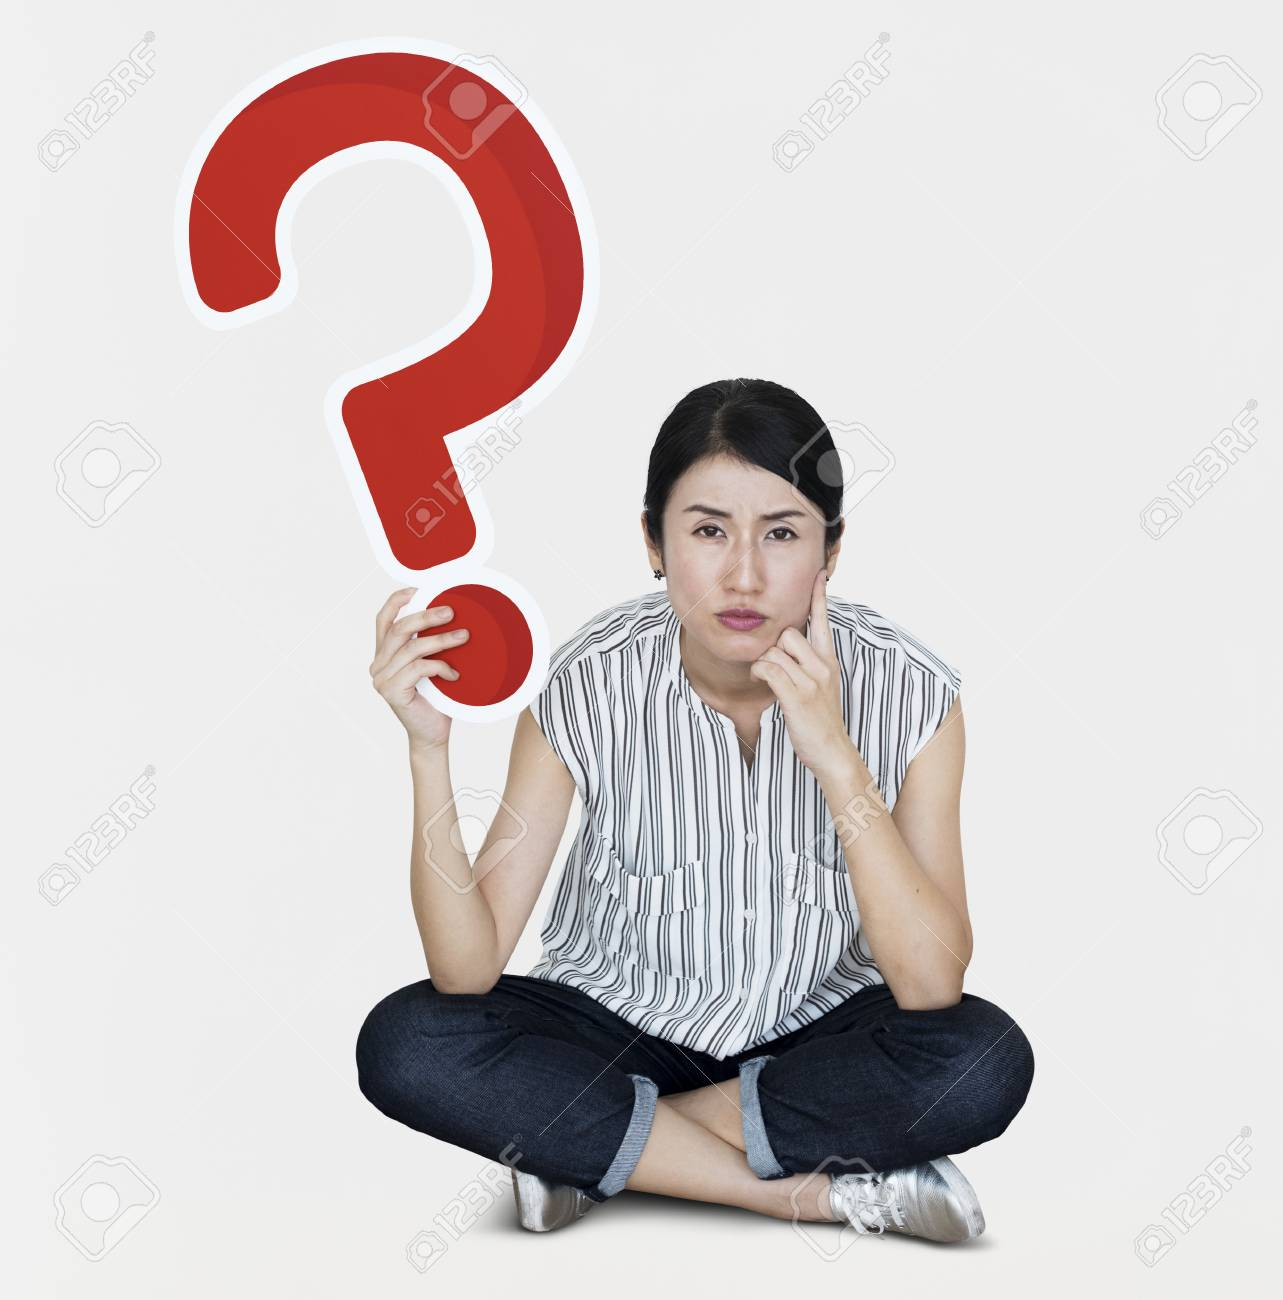 Confused woman holding a question mark icon - 108319597